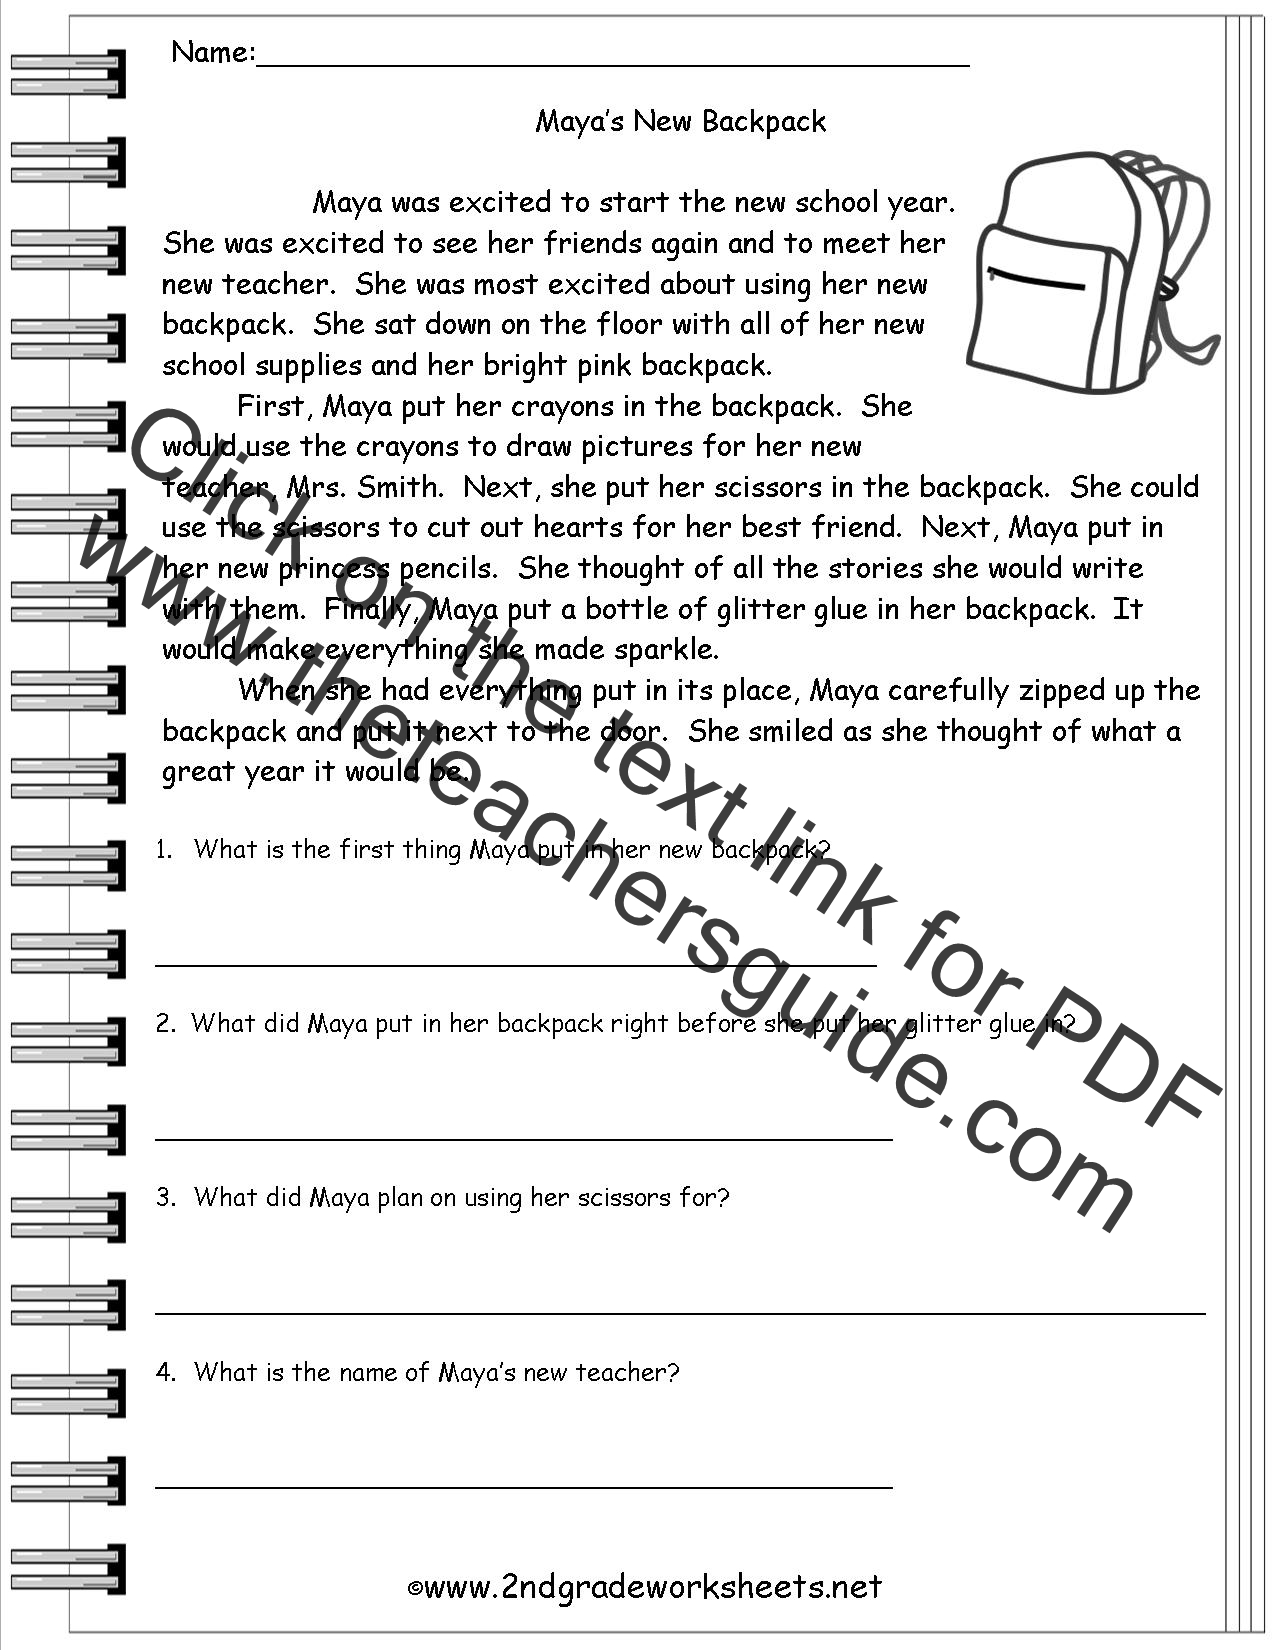 Worksheets Free Printable Second Grade Reading Worksheets free reading comprehension worksheets wallpapercraft download